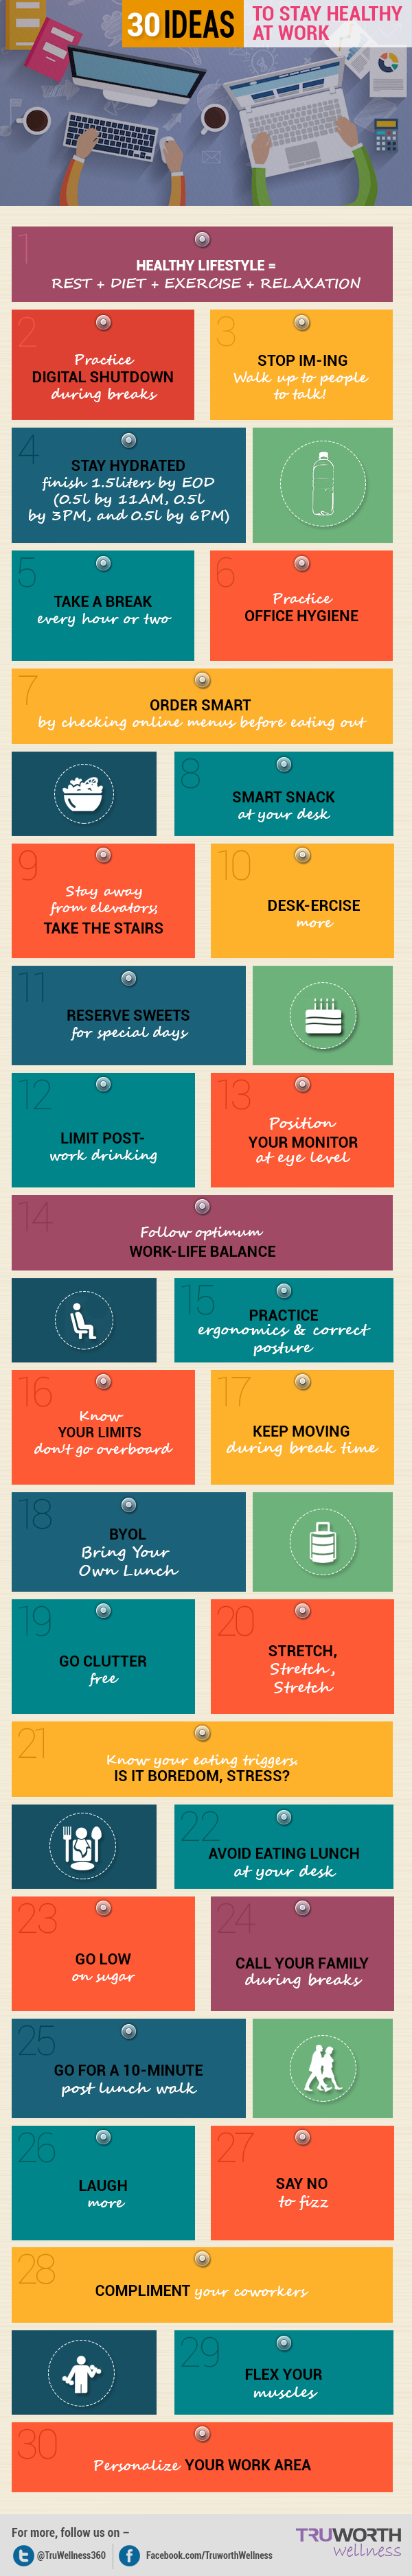 Infographic: 30 Ideas To Stay Healthy At Work